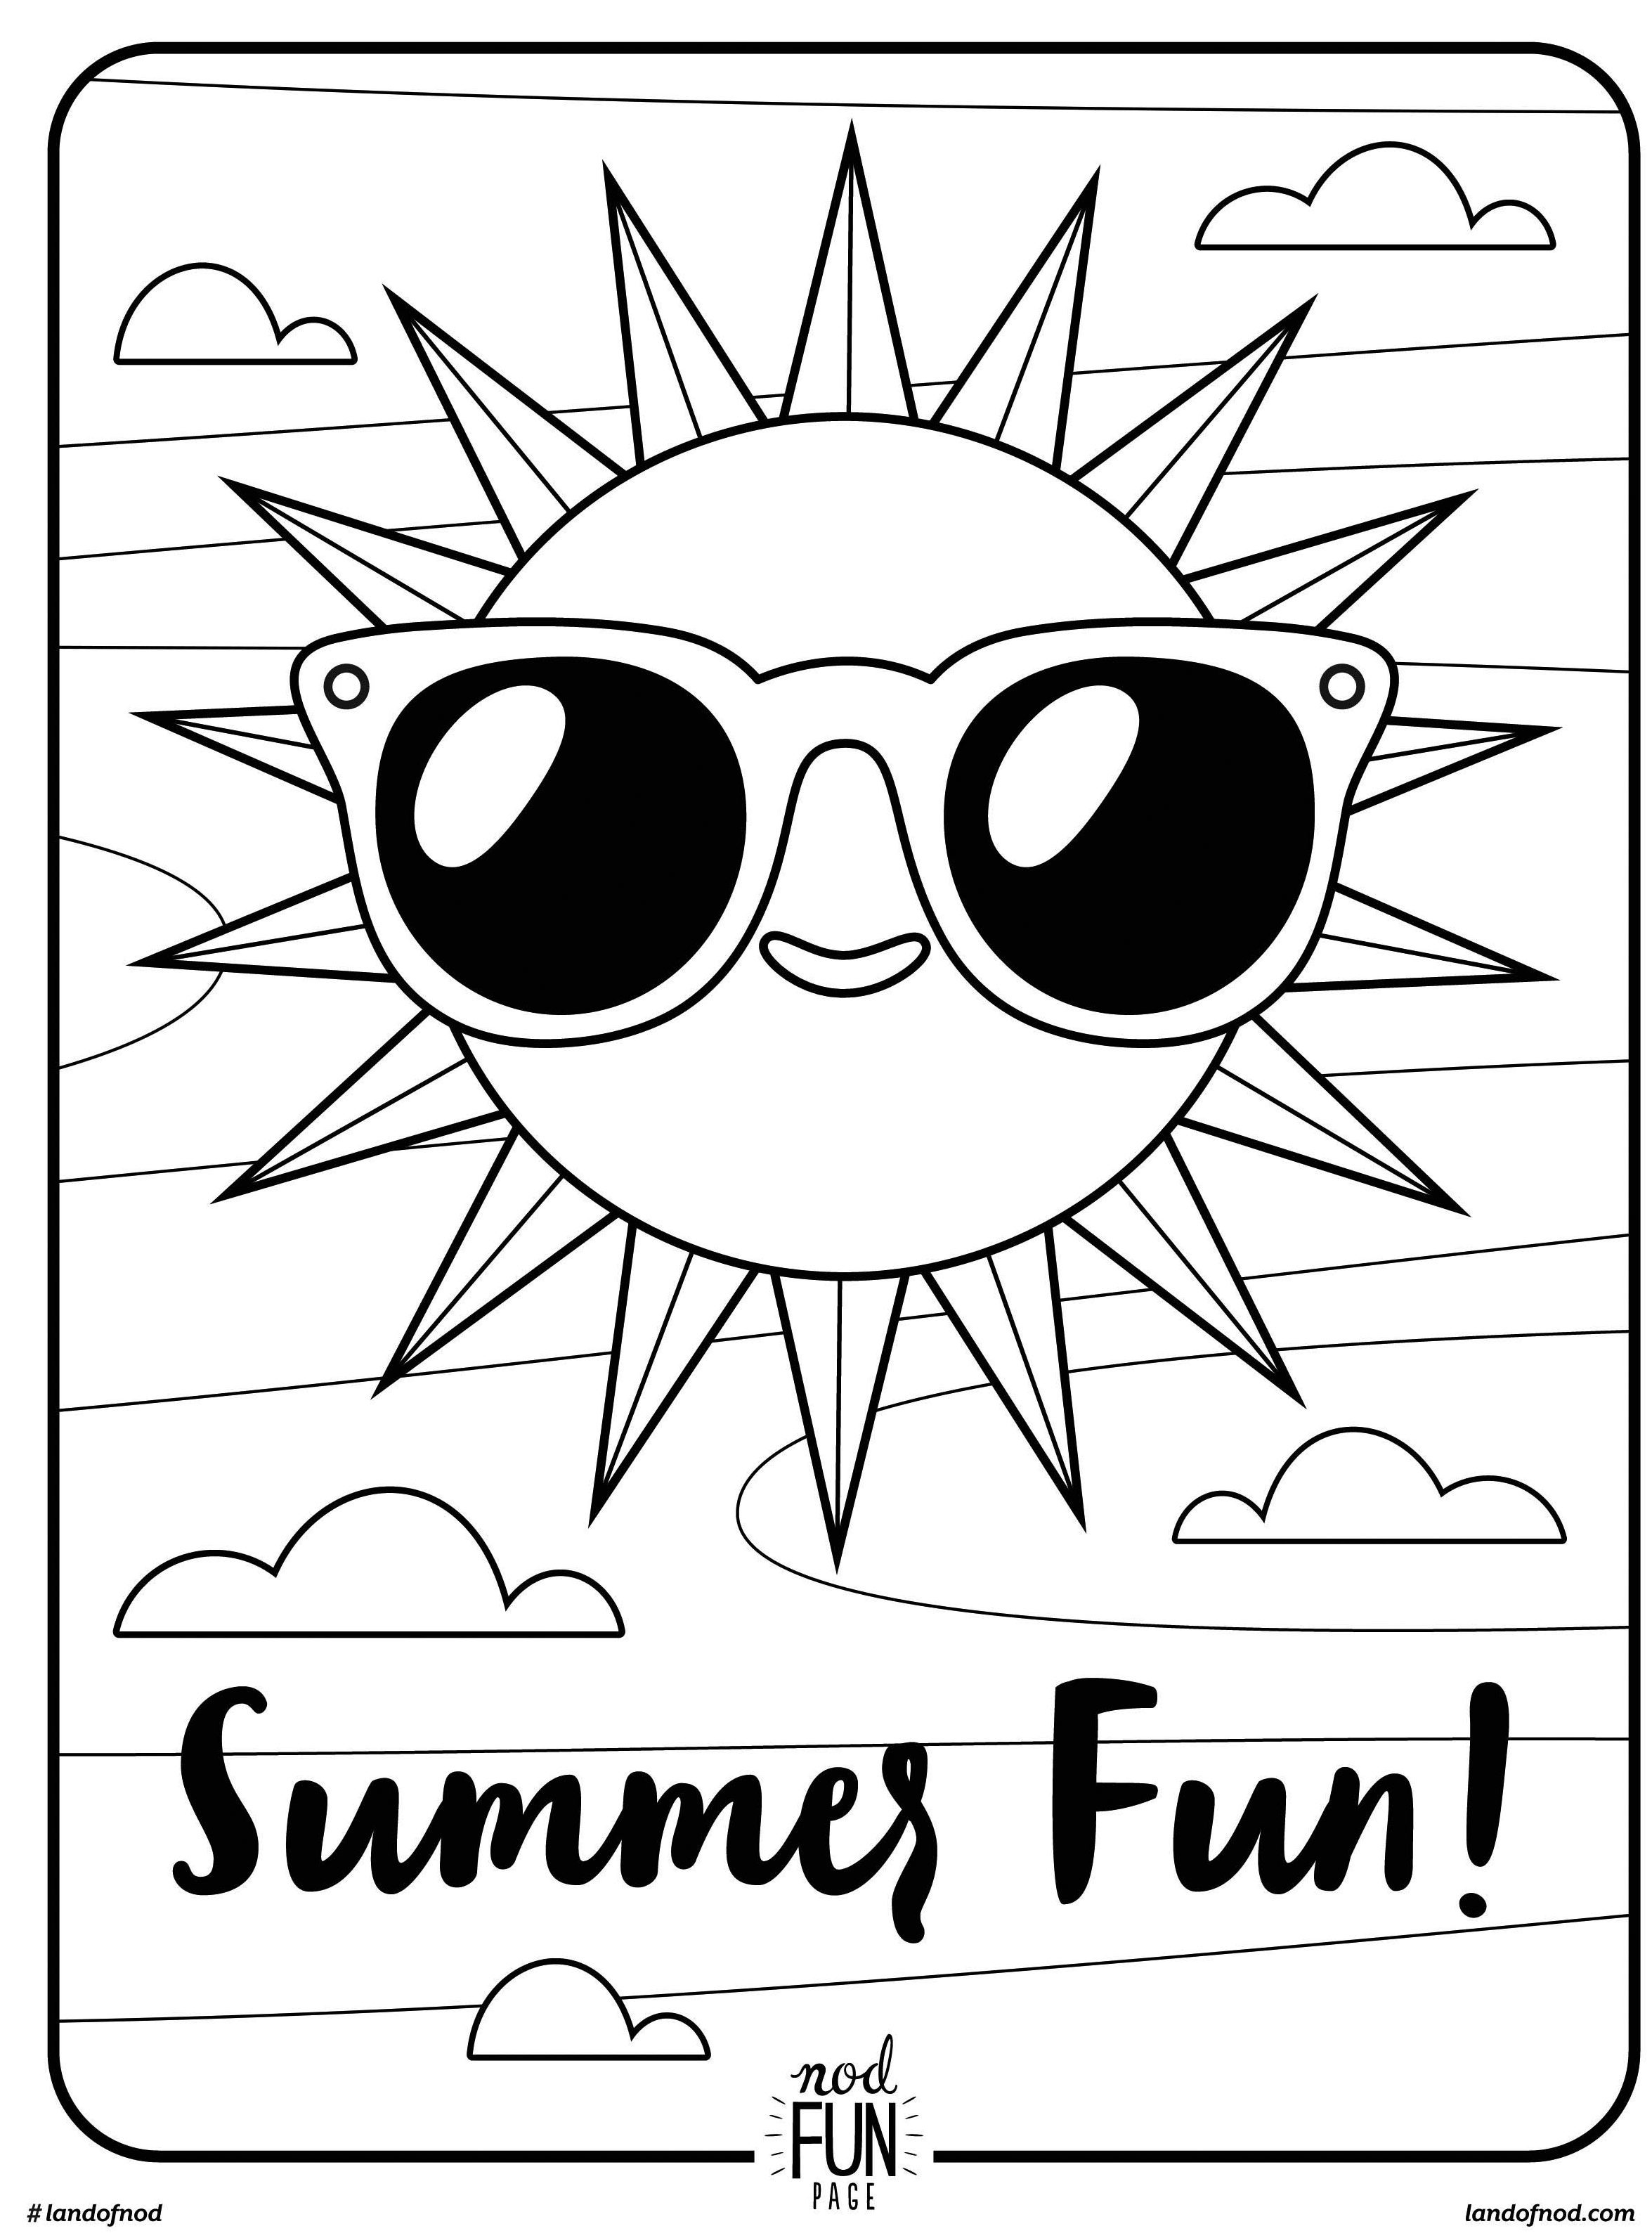 Detailed Coloring Pages For Kids at GetDrawings.com | Free for ...